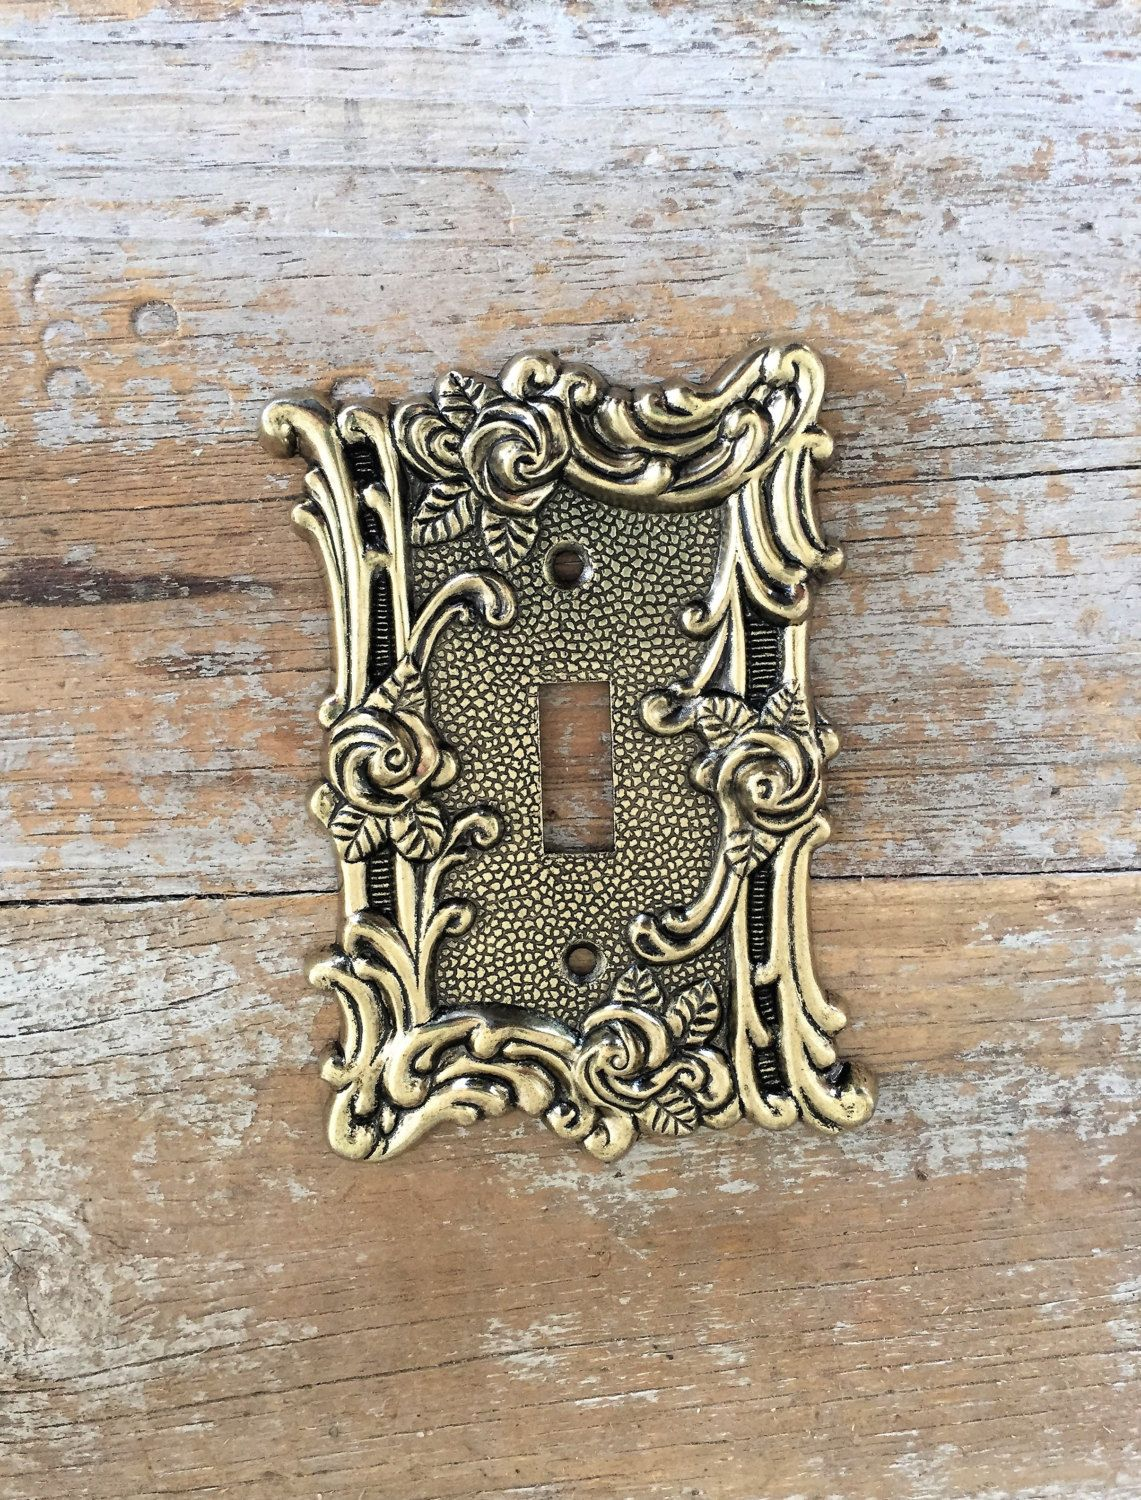 Brass Light Switch Covers Enchanting Light Switch Cover Lightswitch Plate Brass Light Switch Cover Design Ideas